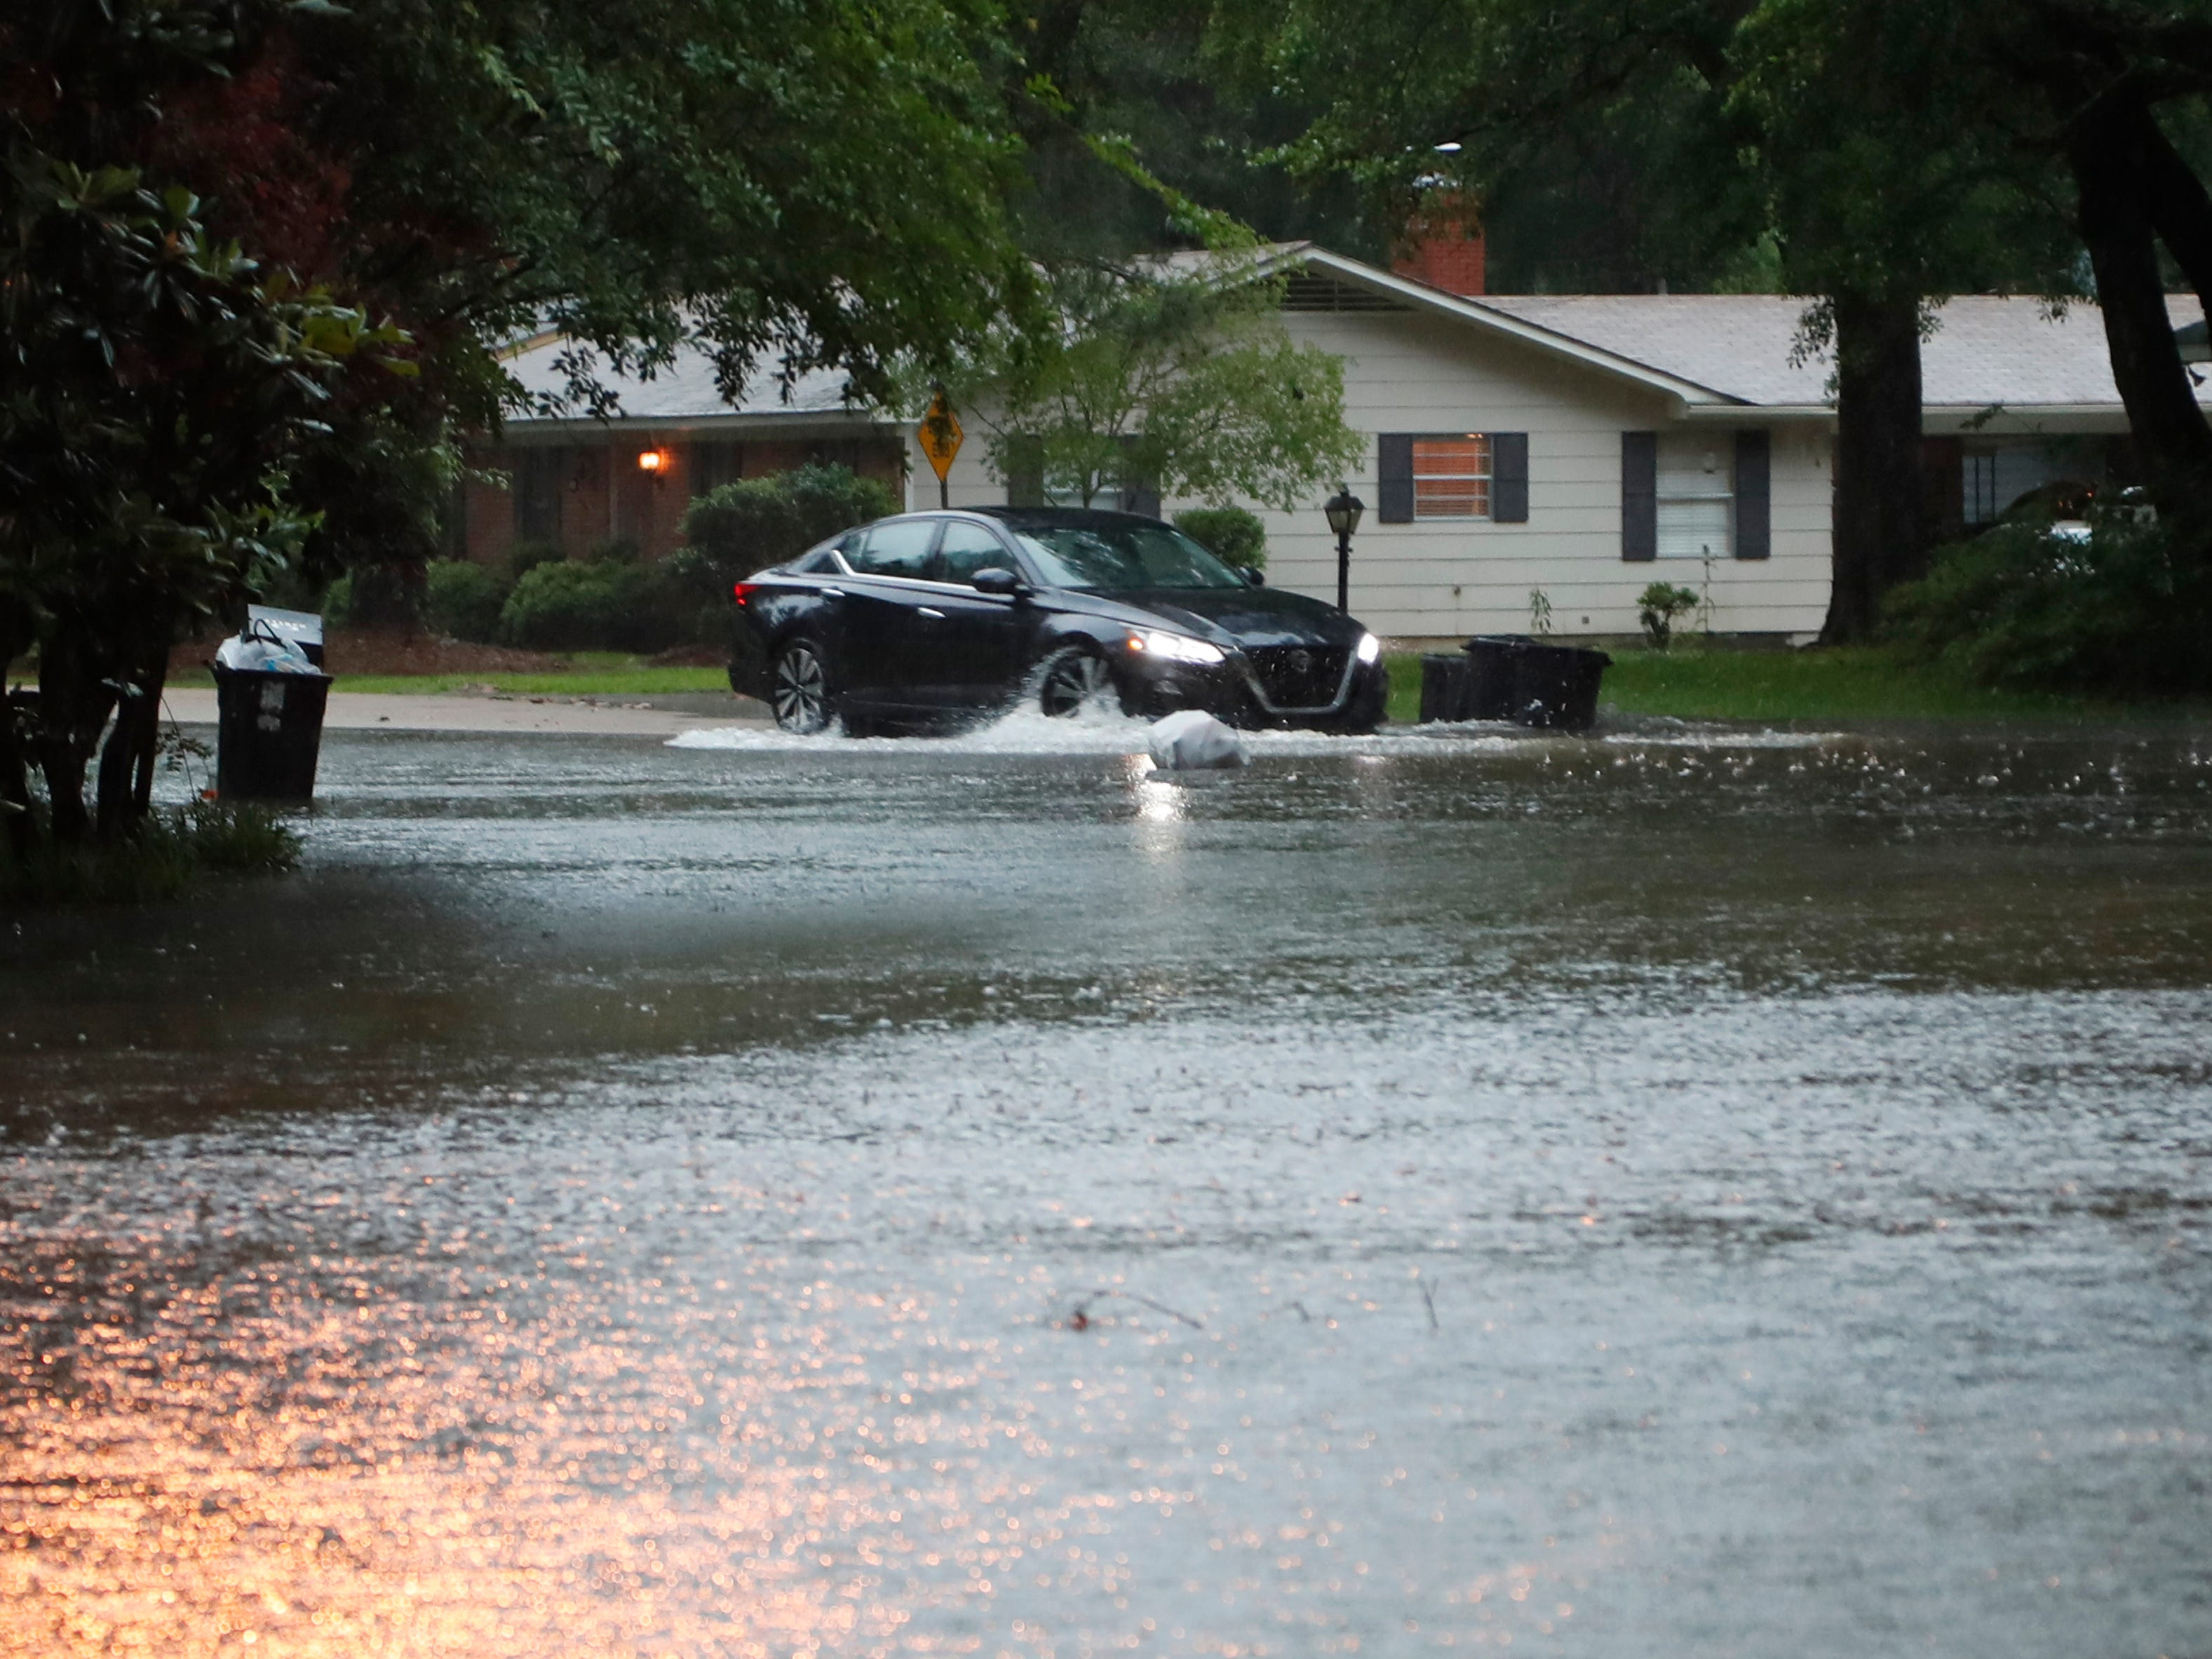 A driver in this northeast Jackson, Miss., neighborhood attempts to backup after first entering a flood street, Thursday, May 9, 2019. Strong winds, tornado warnings and substantial rains added to the flash flooding throughout Mississippi.